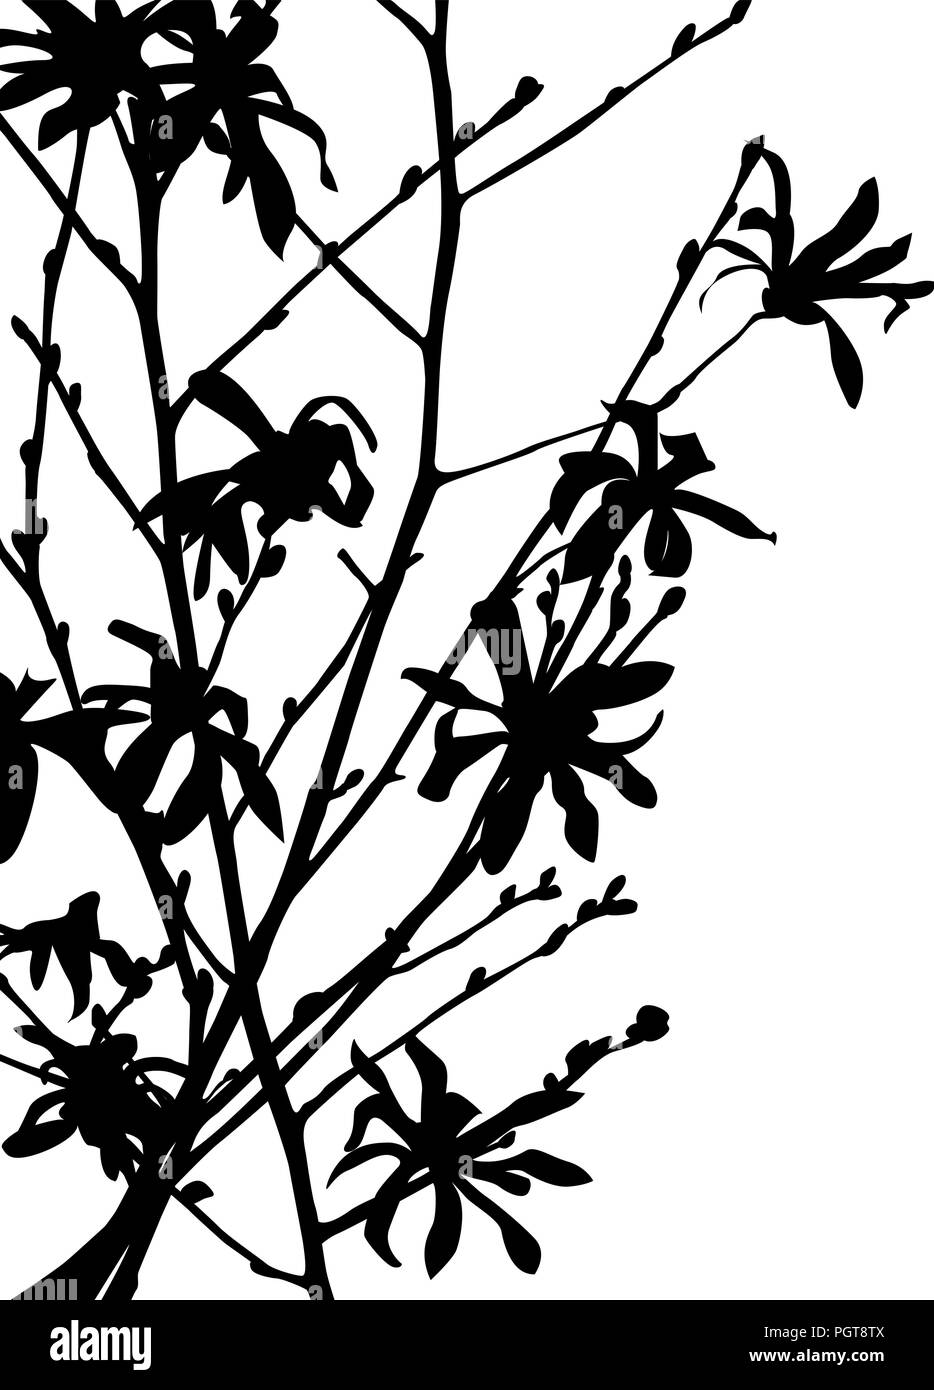 Wild Flower Silhouette In Black And White For Print Stock Vector Art